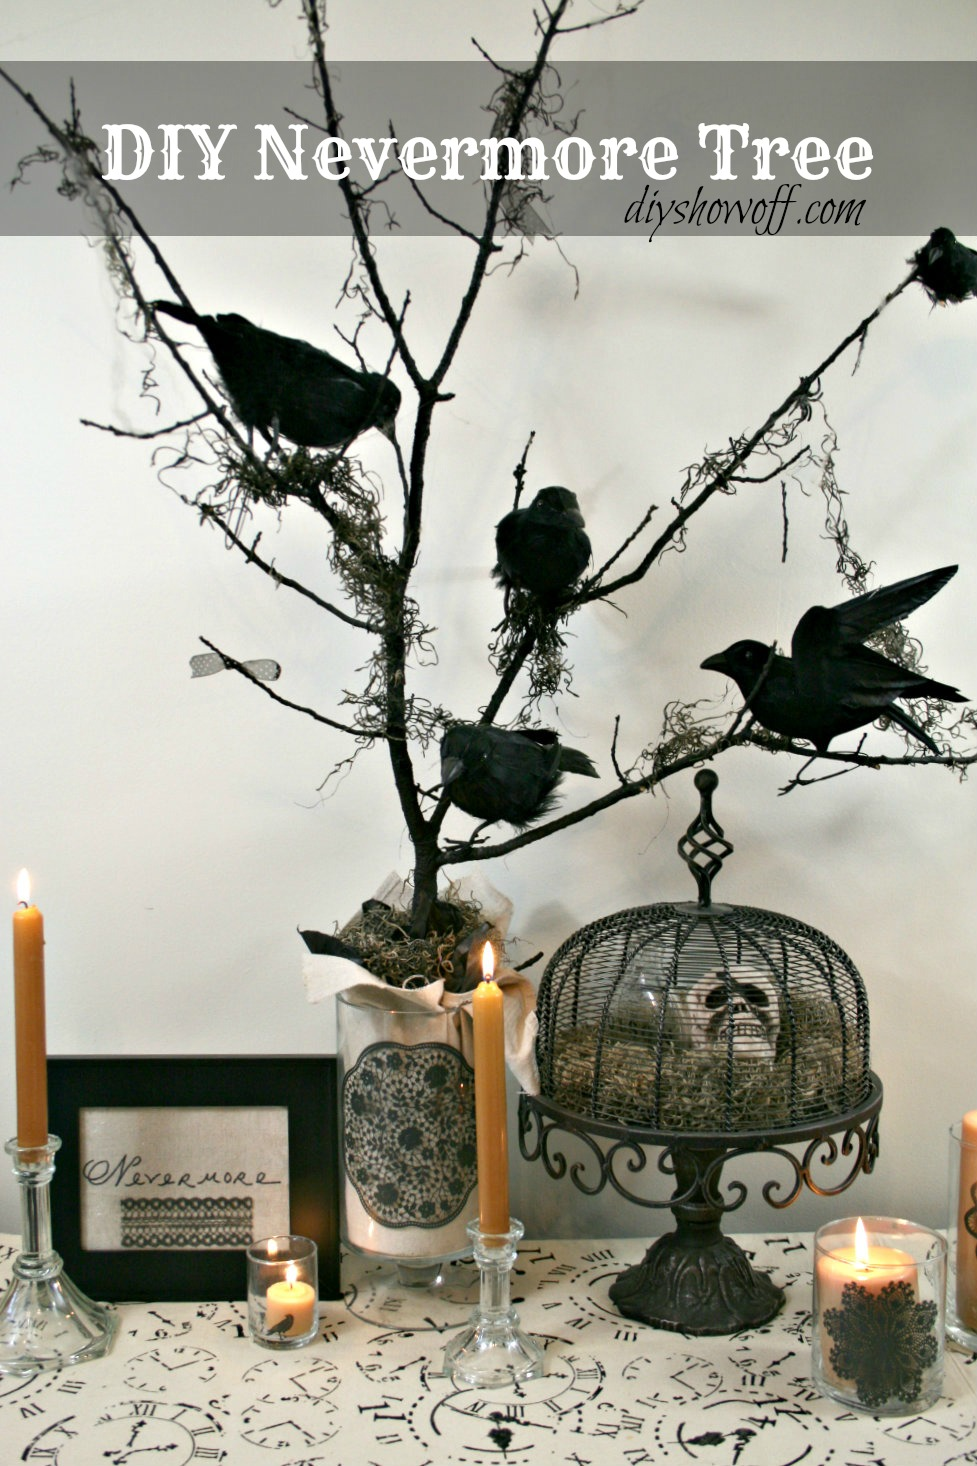 diy halloween nevermore tree decordiy show off diy decorating and home improvement blog. Black Bedroom Furniture Sets. Home Design Ideas